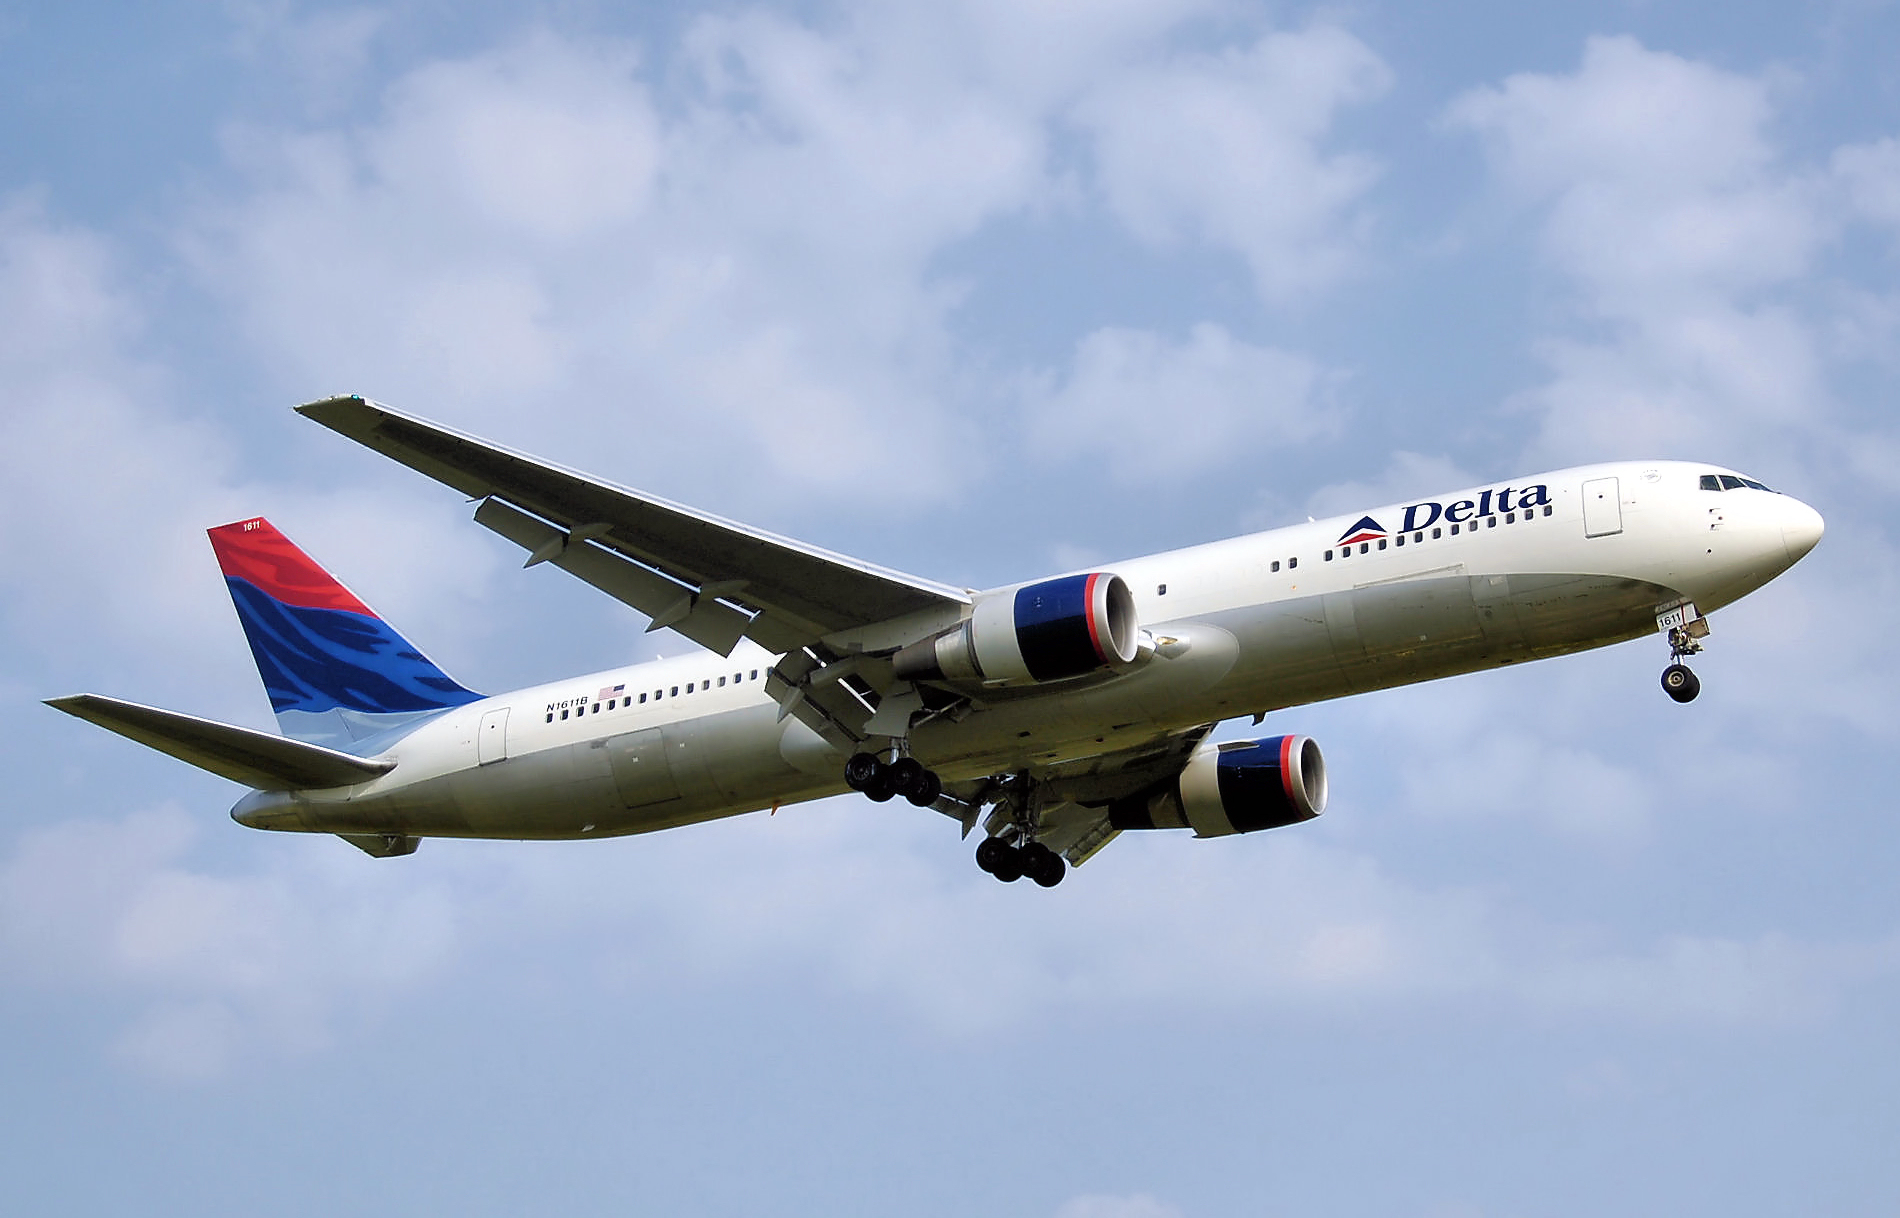 Boeing 767-300er in The Livery